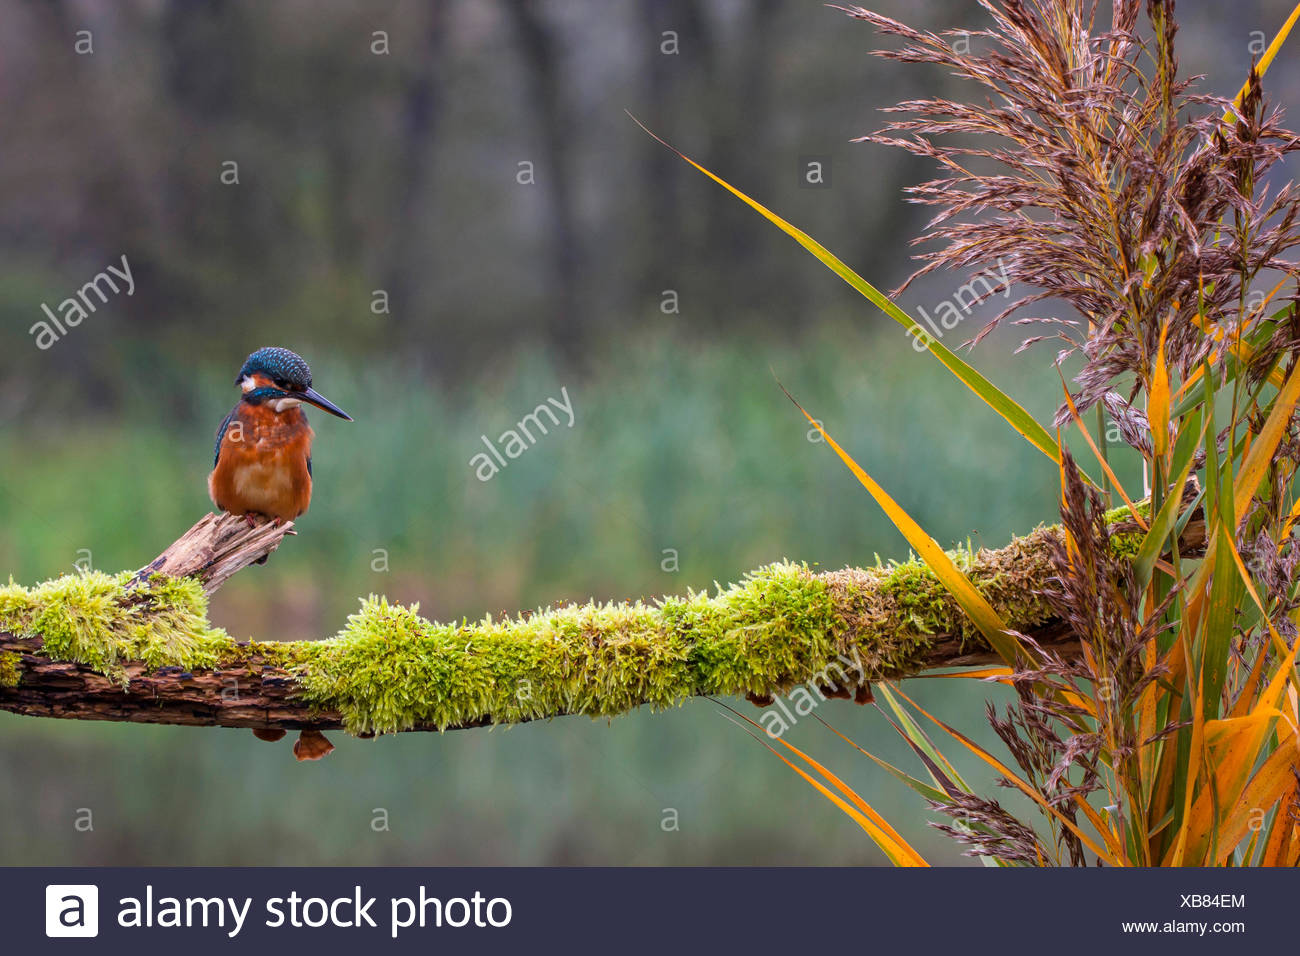 river kingfisher (Alcedo atthis), on its outlook, Switzerland - Stock Image